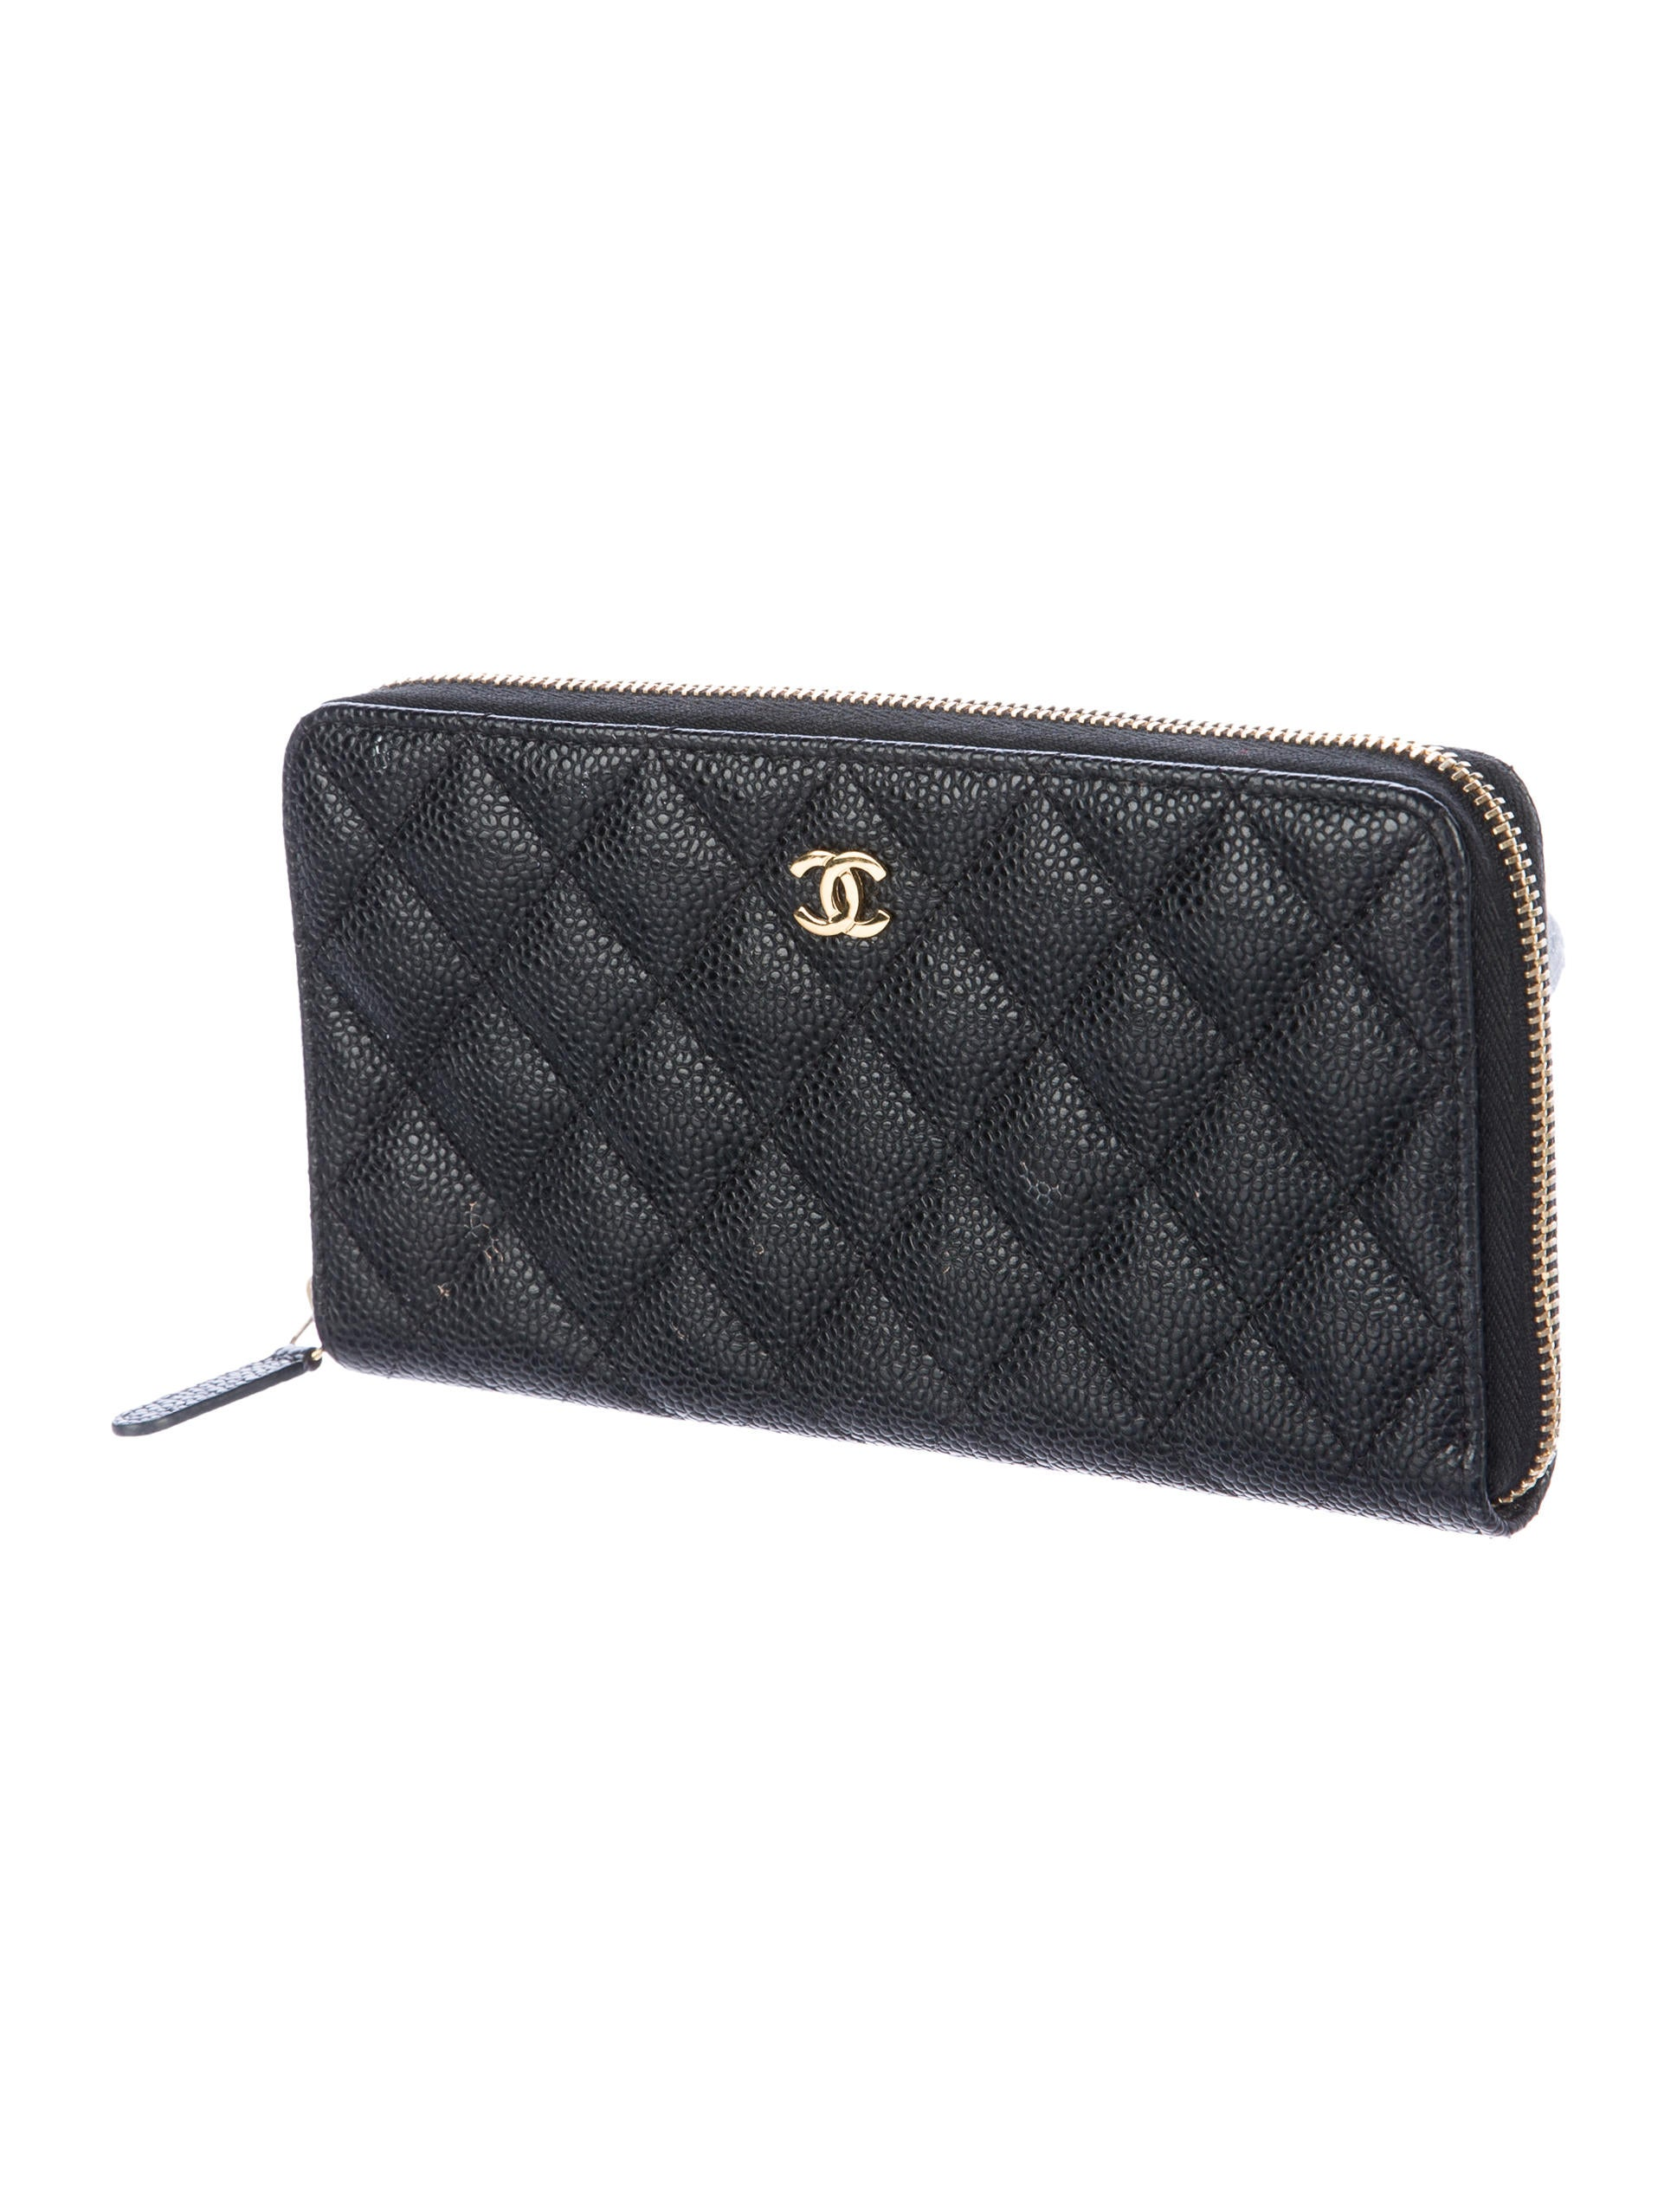 0f910ef008af85 Chanel L Gusset Wallet | Stanford Center for Opportunity Policy in ...